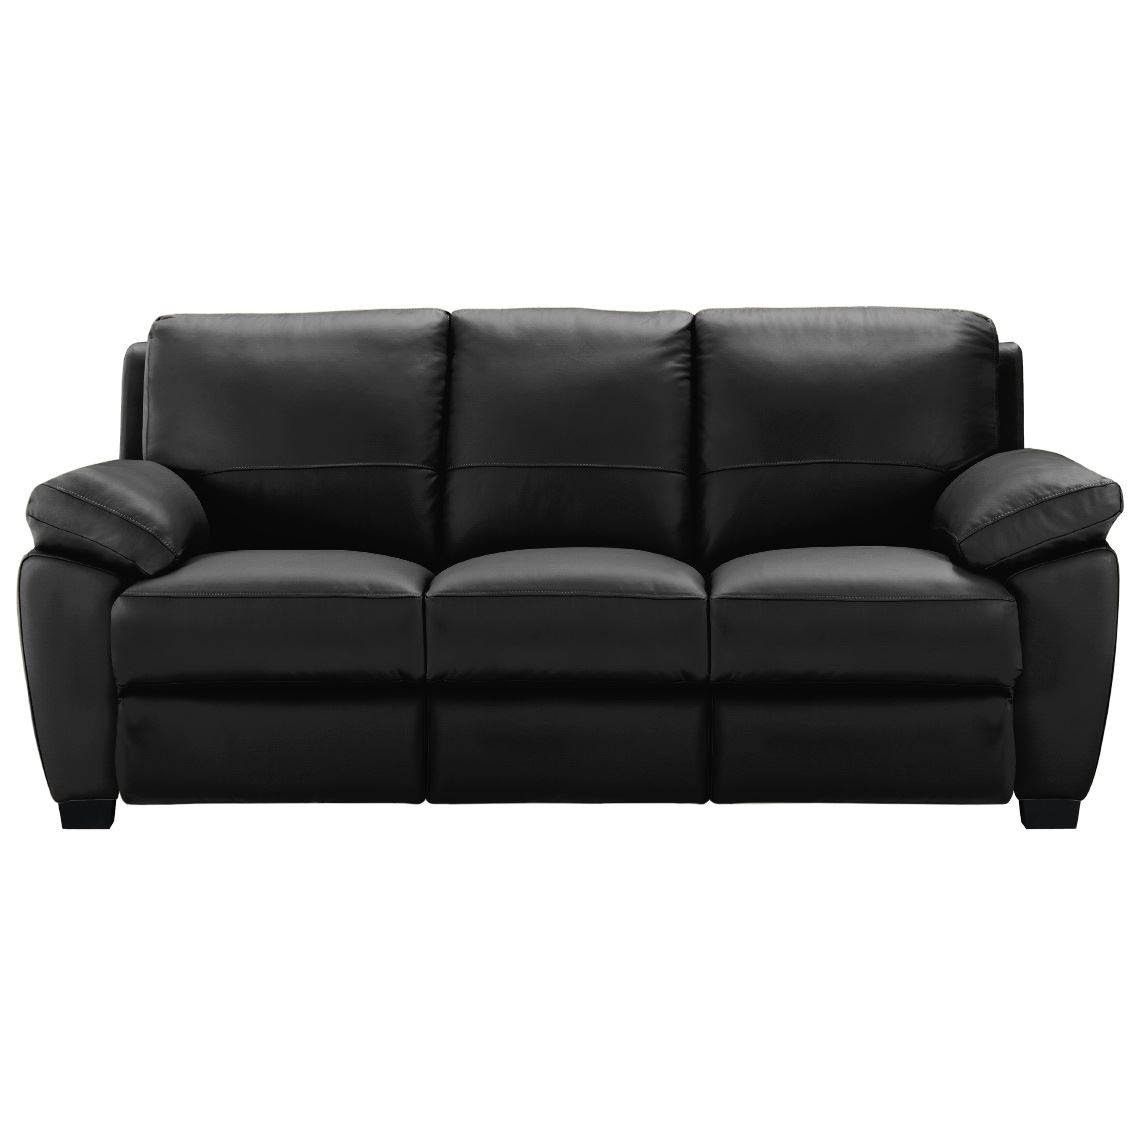 Lucas Recliner 3 Seat Leather Electric Recliner Sofa Licorice Leather Sofa Sofa Reclining Sofa